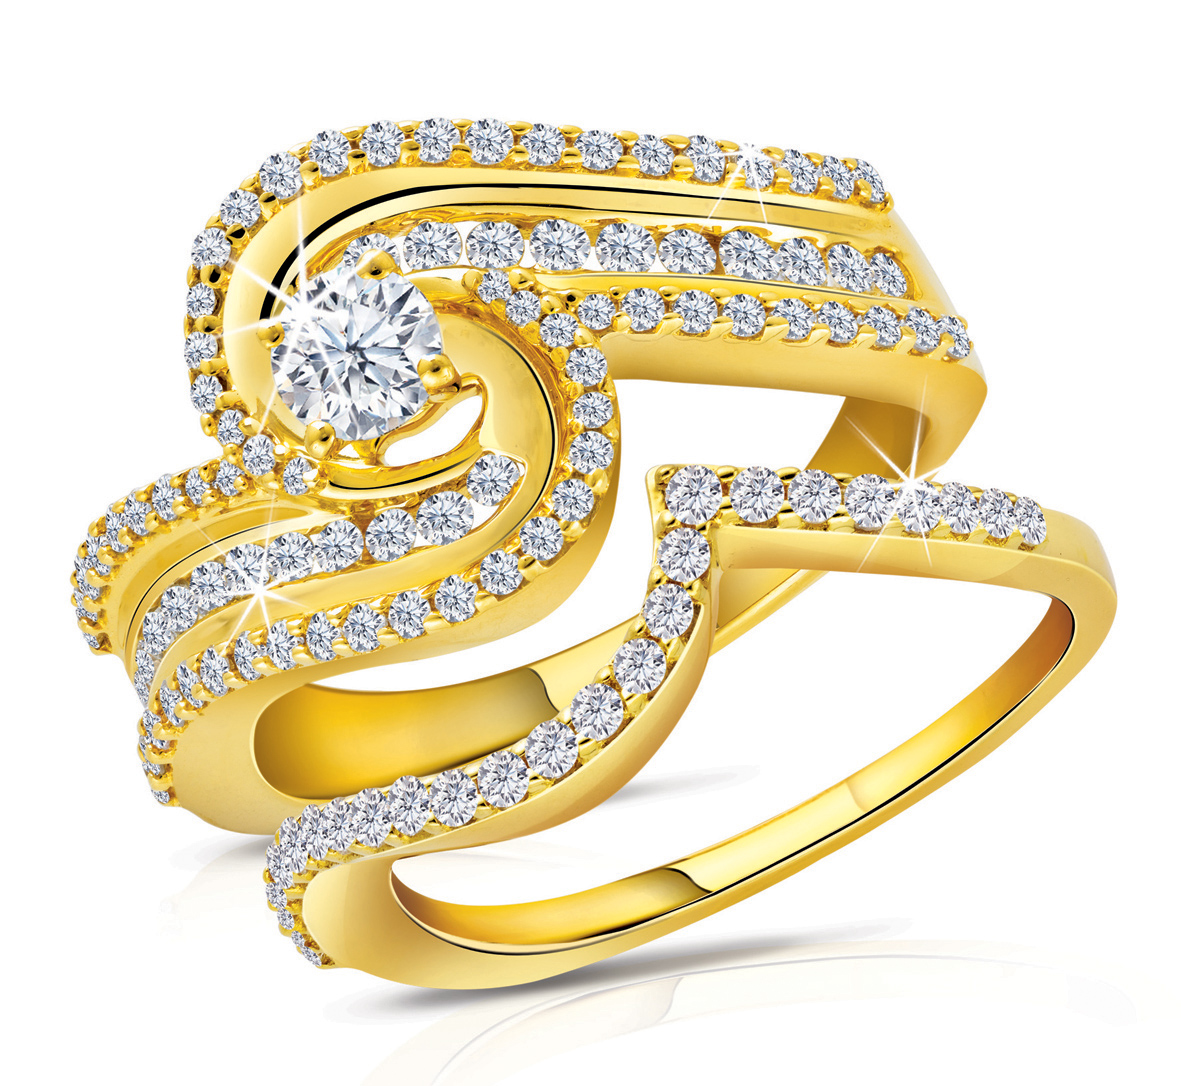 Latest Gold And Platinum Jewellery Designs And Collections For Kids,womens  And Girlsbuy